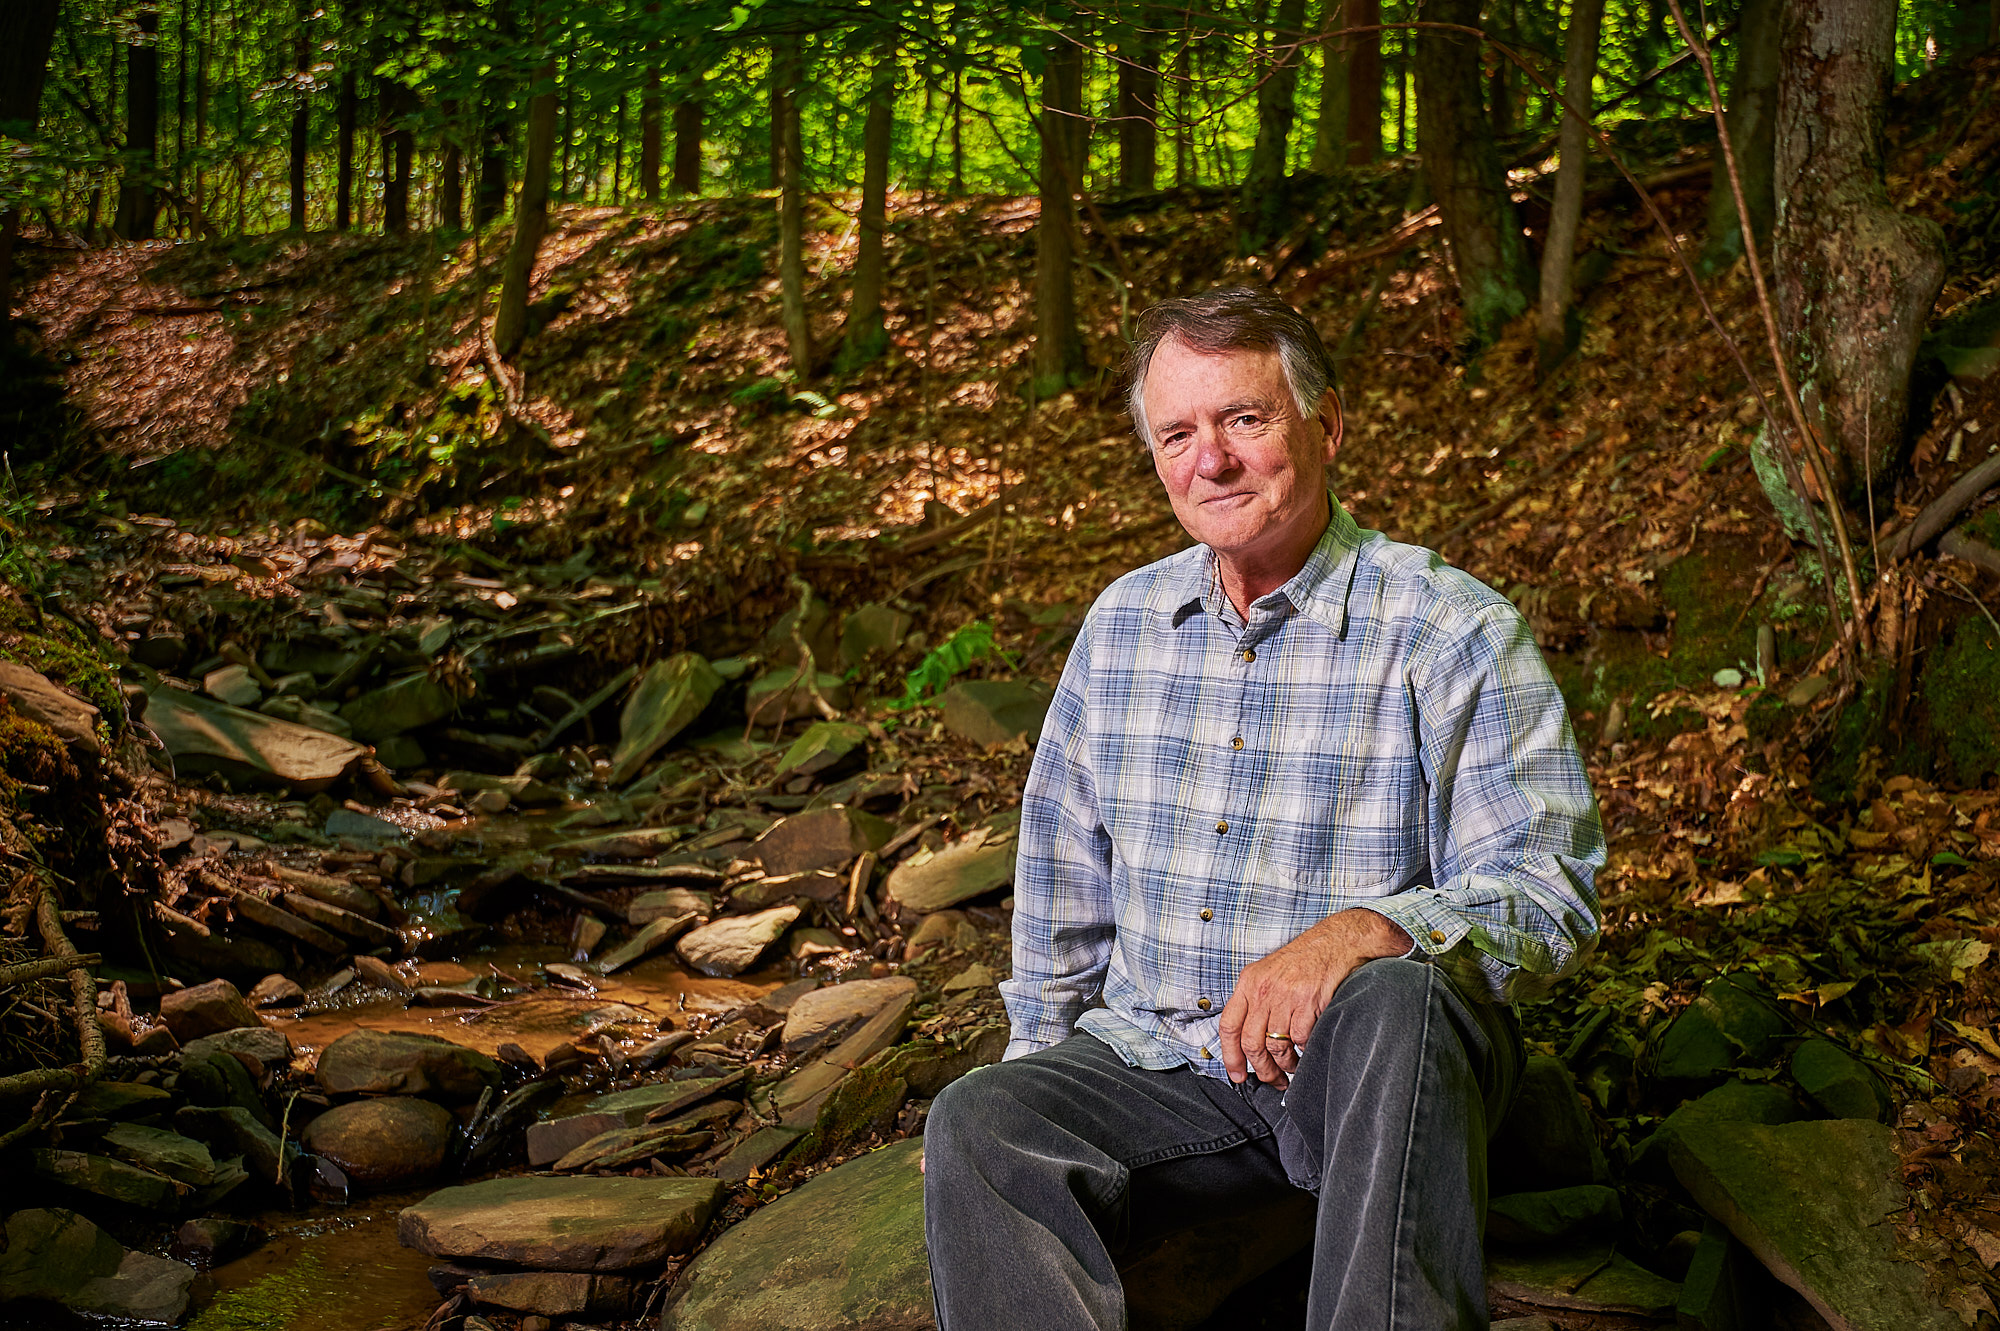 Rick Marsi, Naturalist, Photographer and Author, photographed beside a stream on his property in Vestal, NY